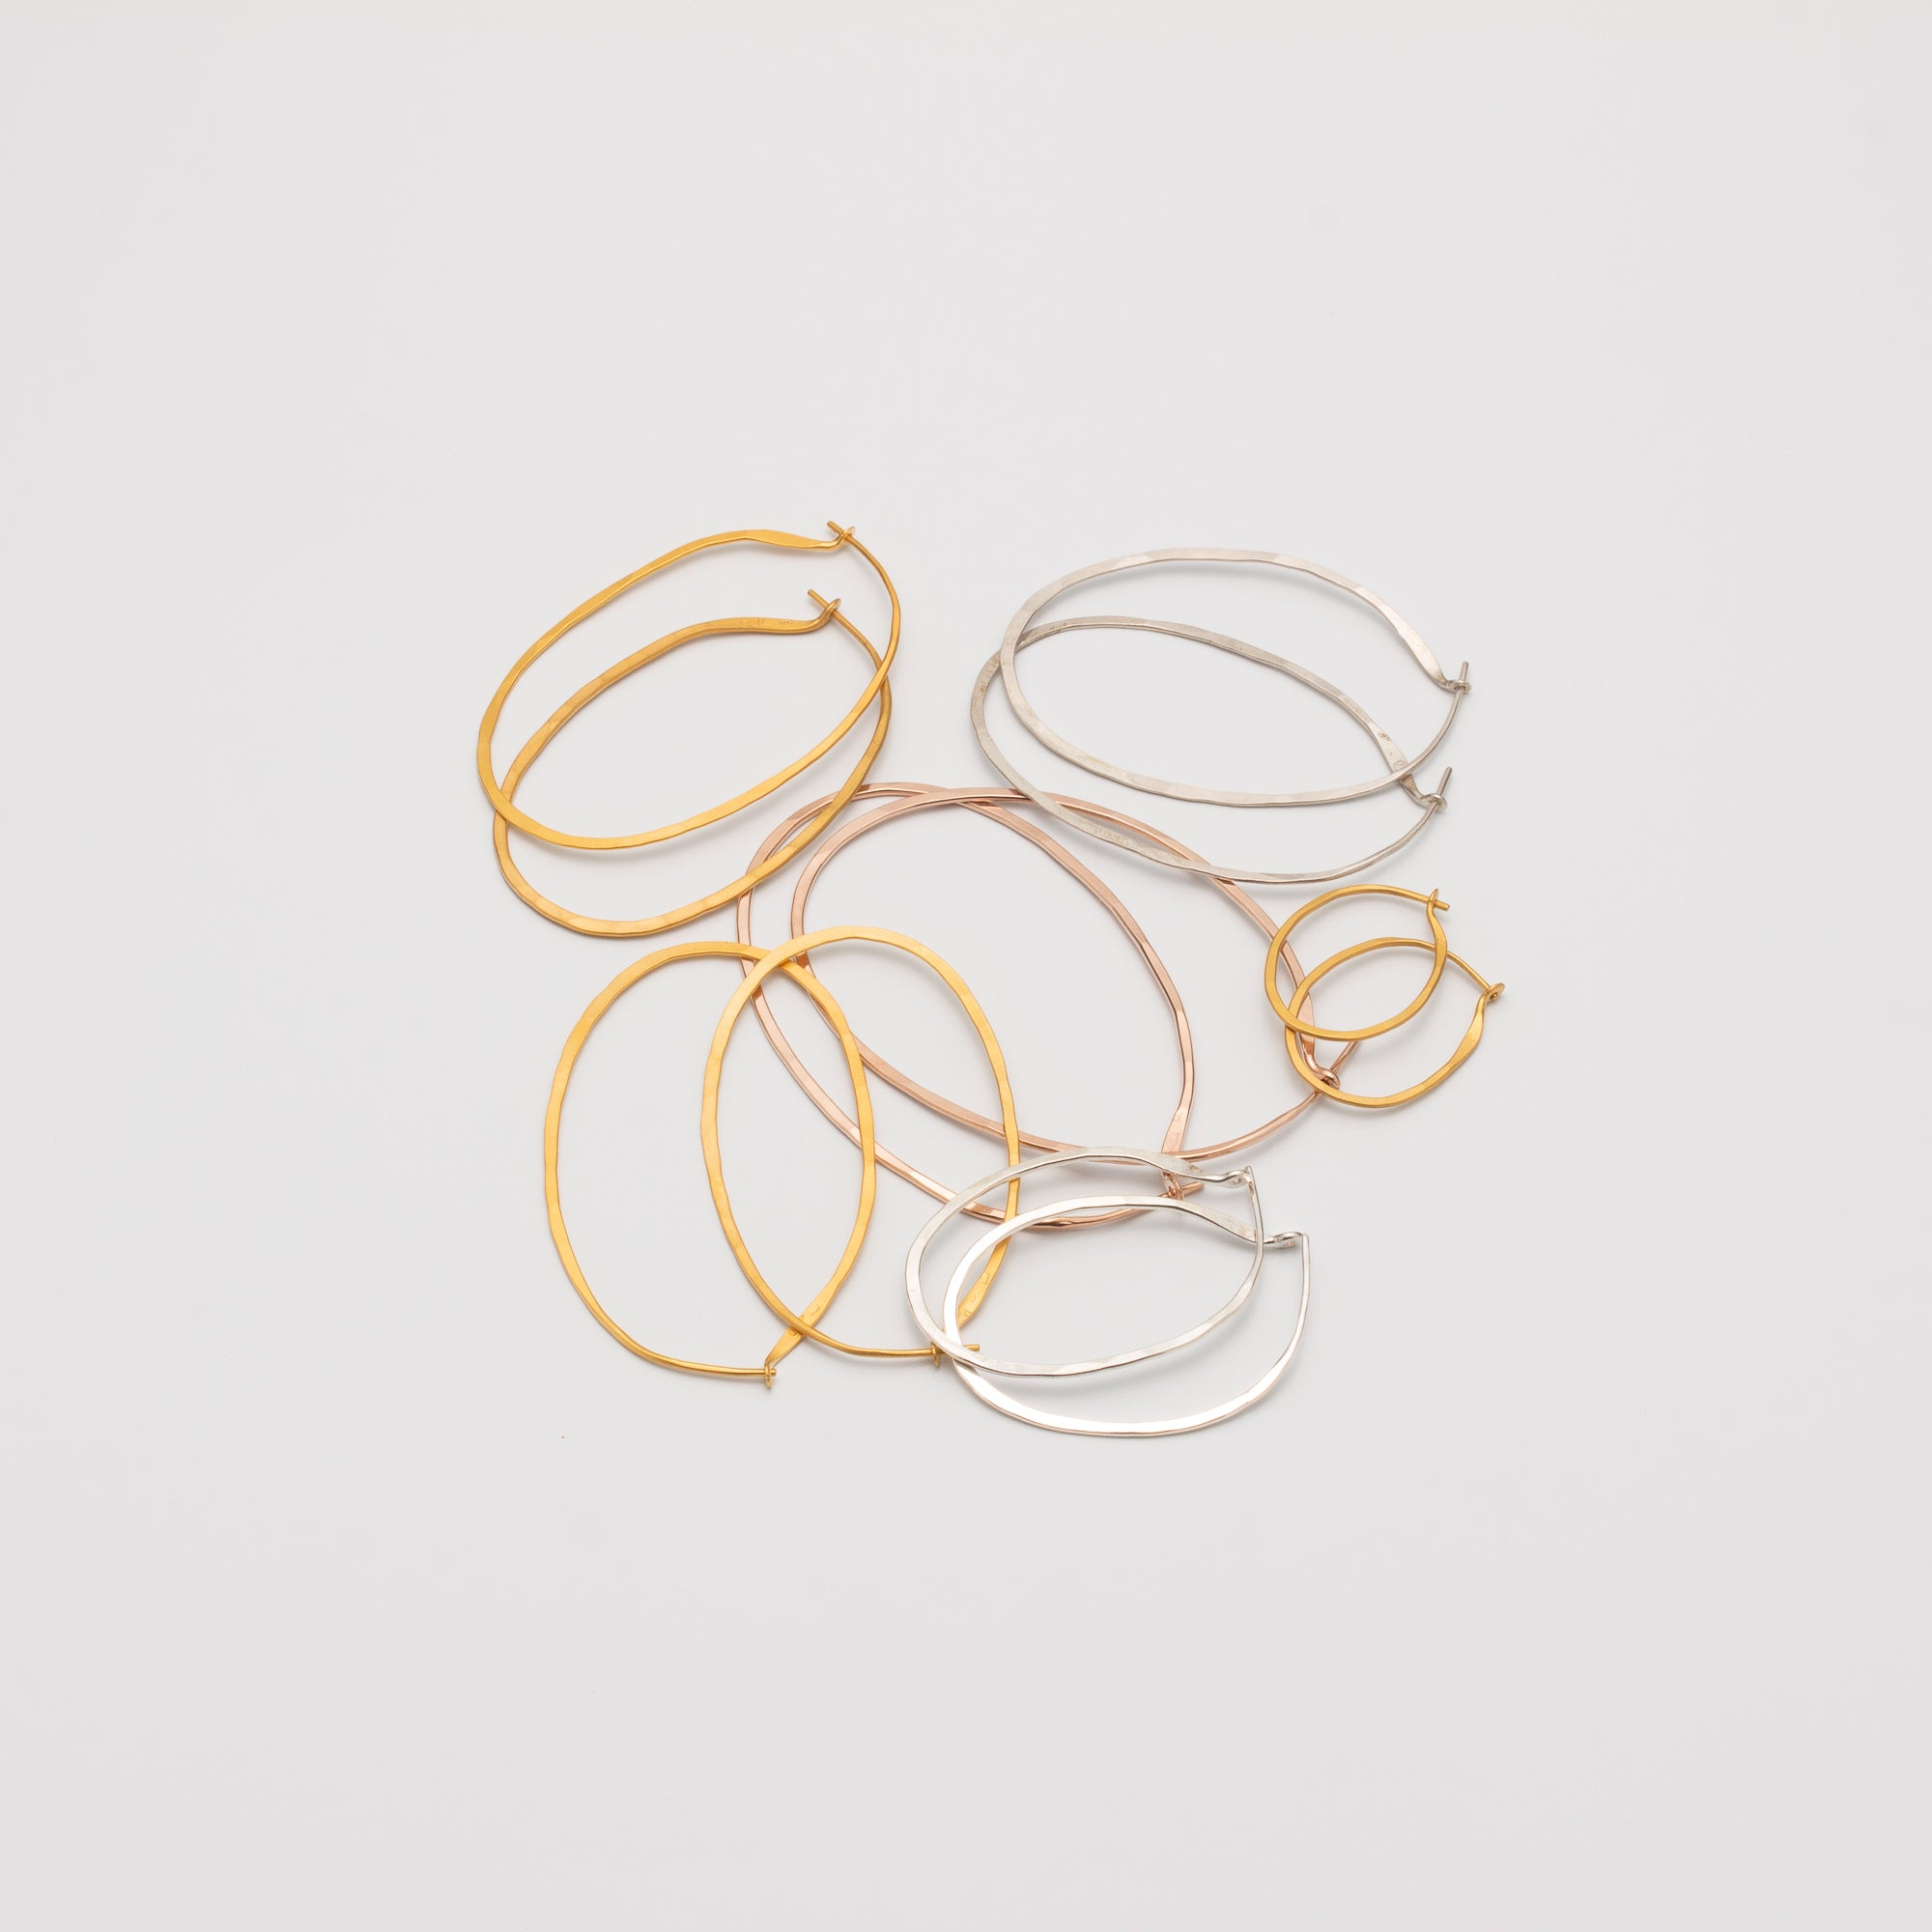 HOOPS // LARGE // OVAL // ROSE GOLD